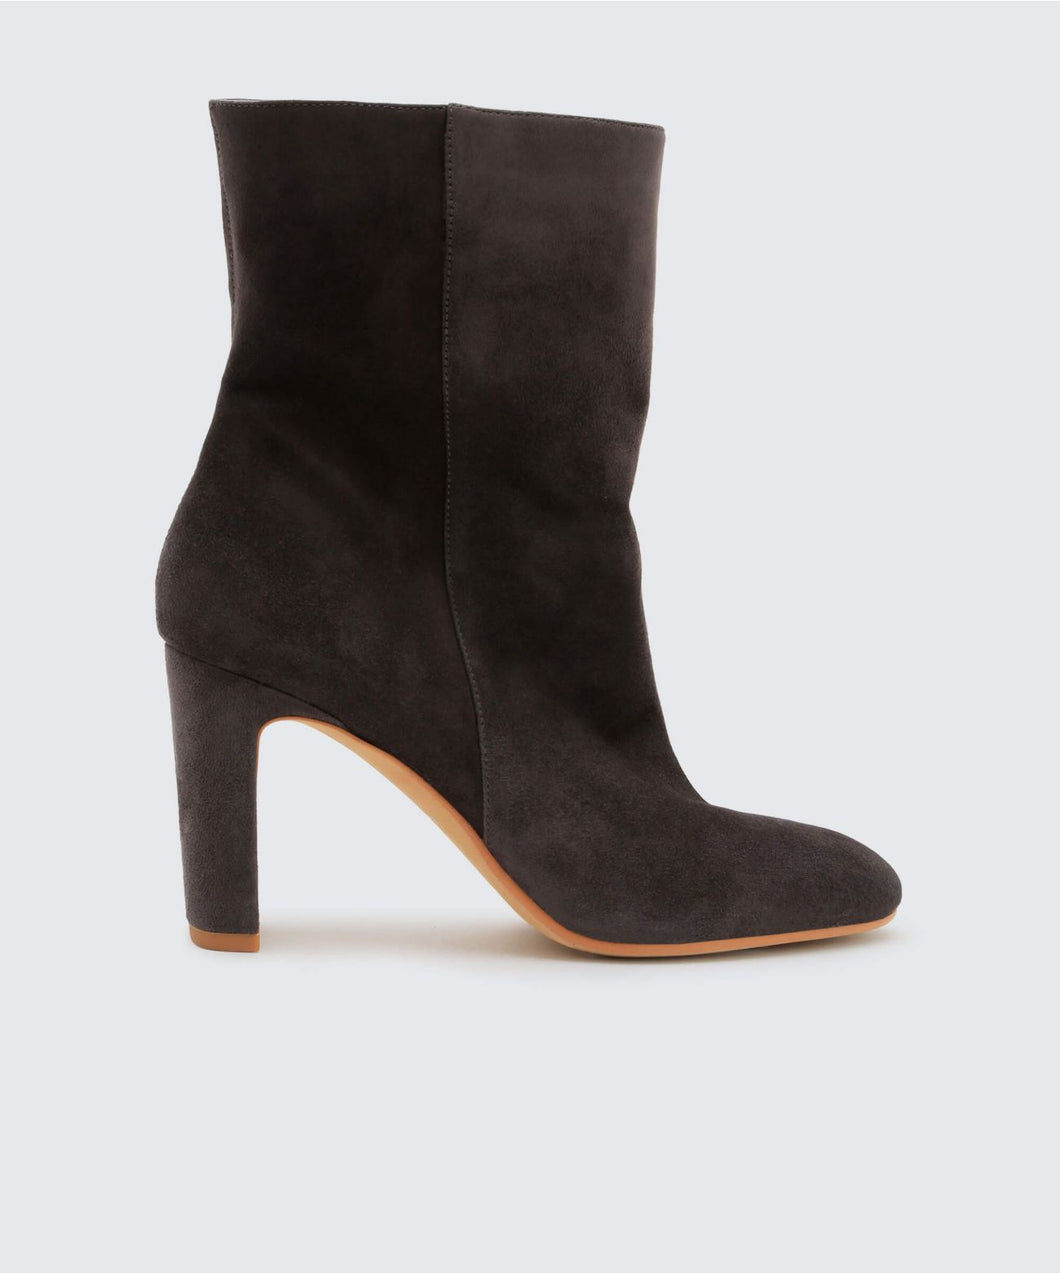 CHASE BOOTIES ANTHRACITE -   Dolce Vita